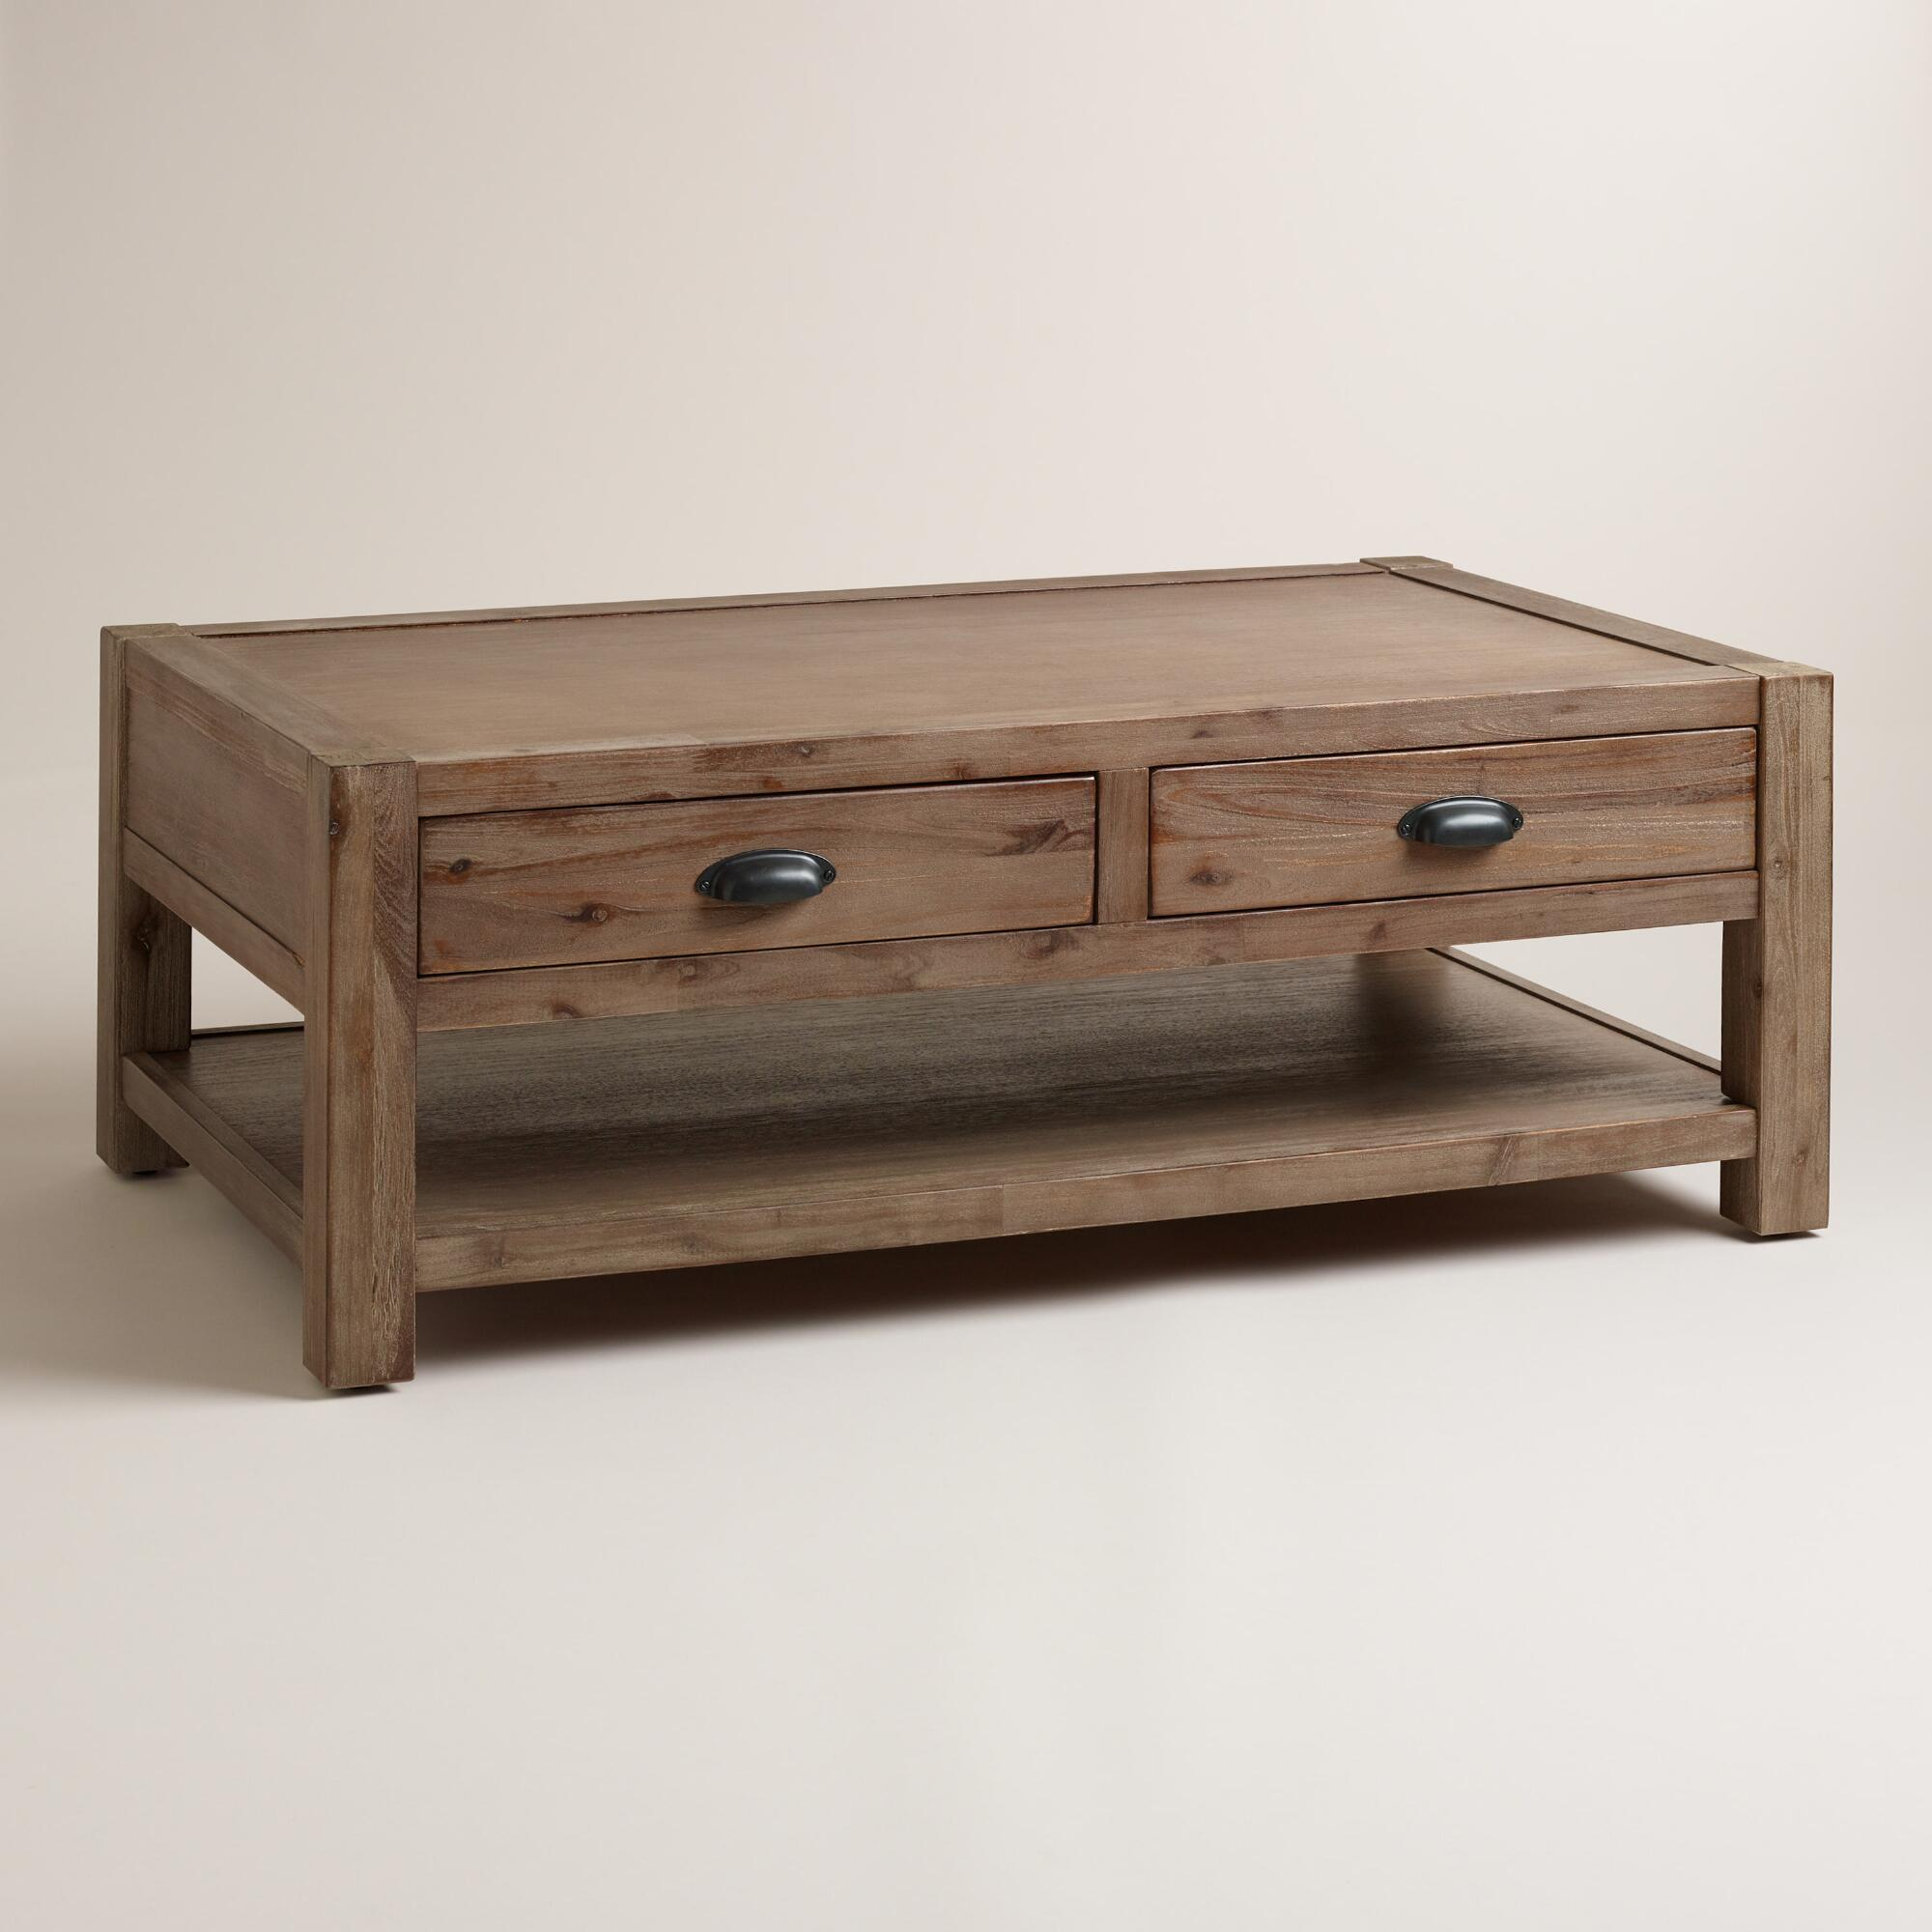 Wood Quade Coffee Table | World Market